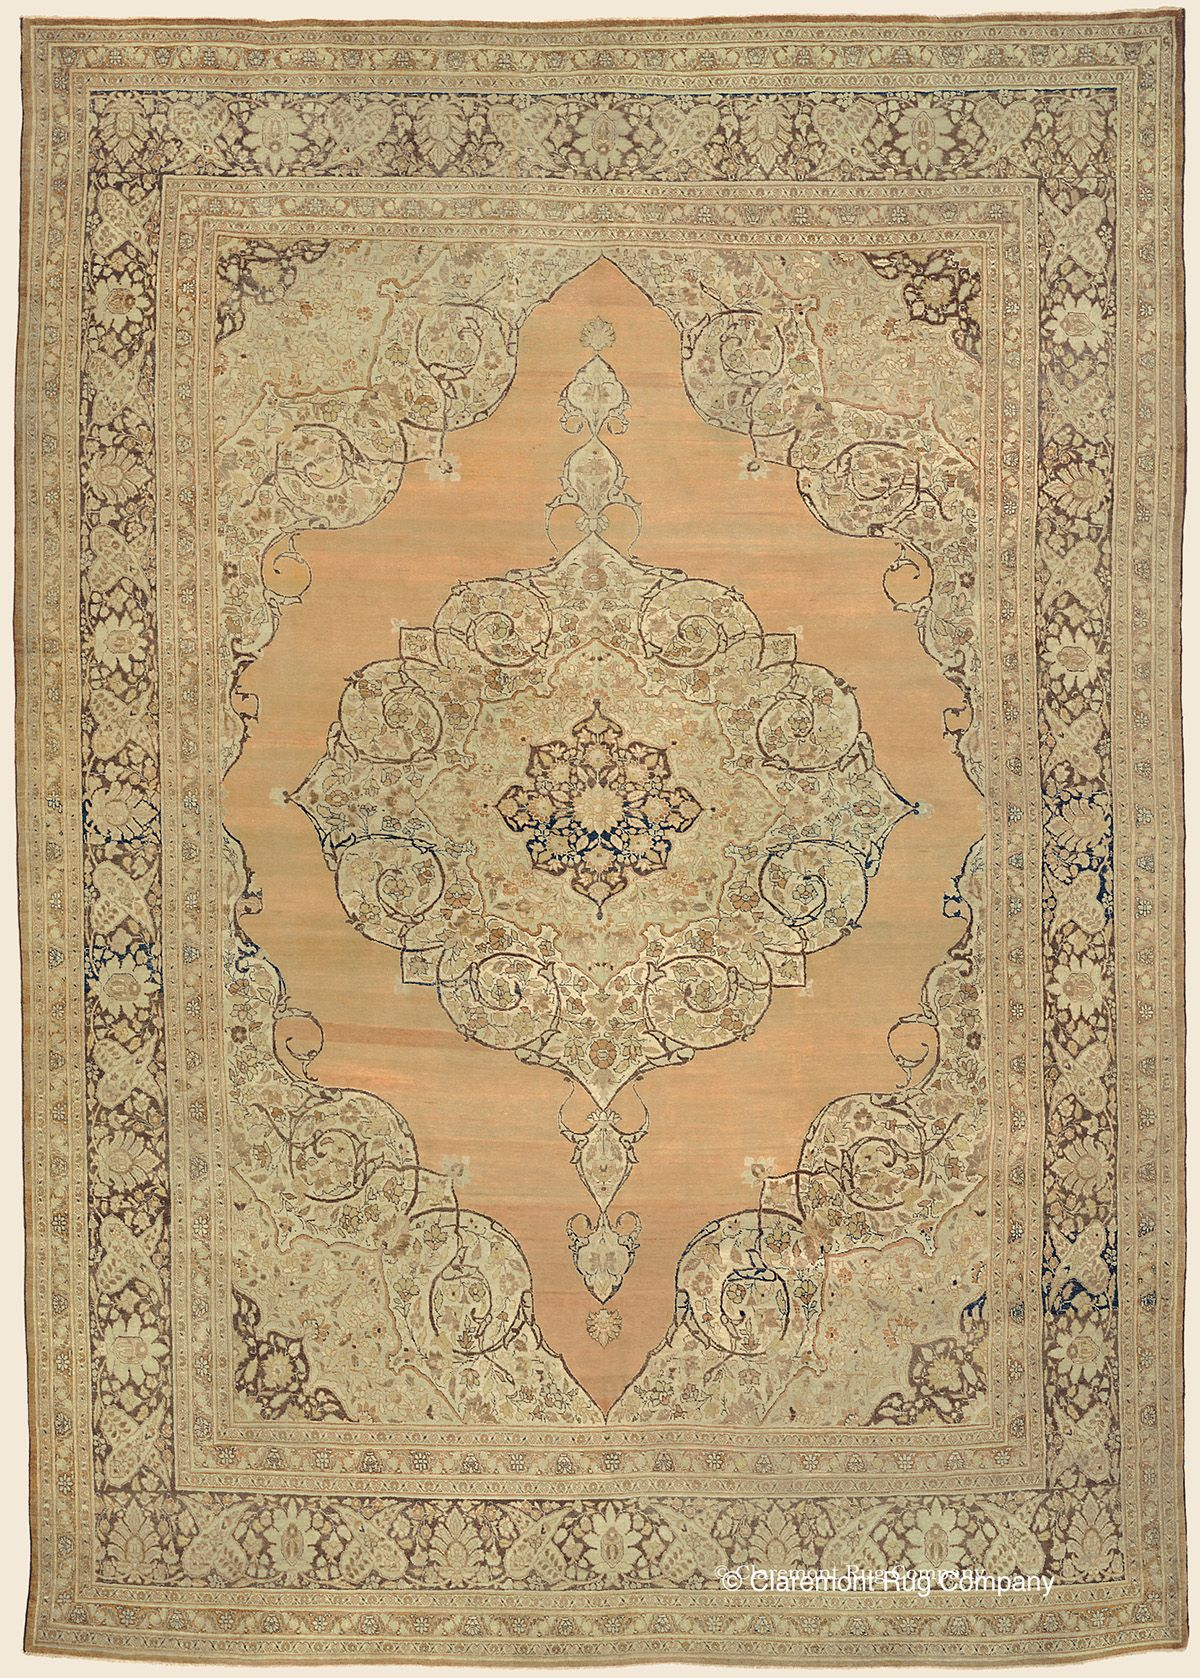 Hadji Jallili Haji Jalili Tabriz 9 6 X 13 1 Circa 1850 Northwest Persian Antique Rug Clar Persian Rug Designs Rugs On Carpet Antique Persian Carpet